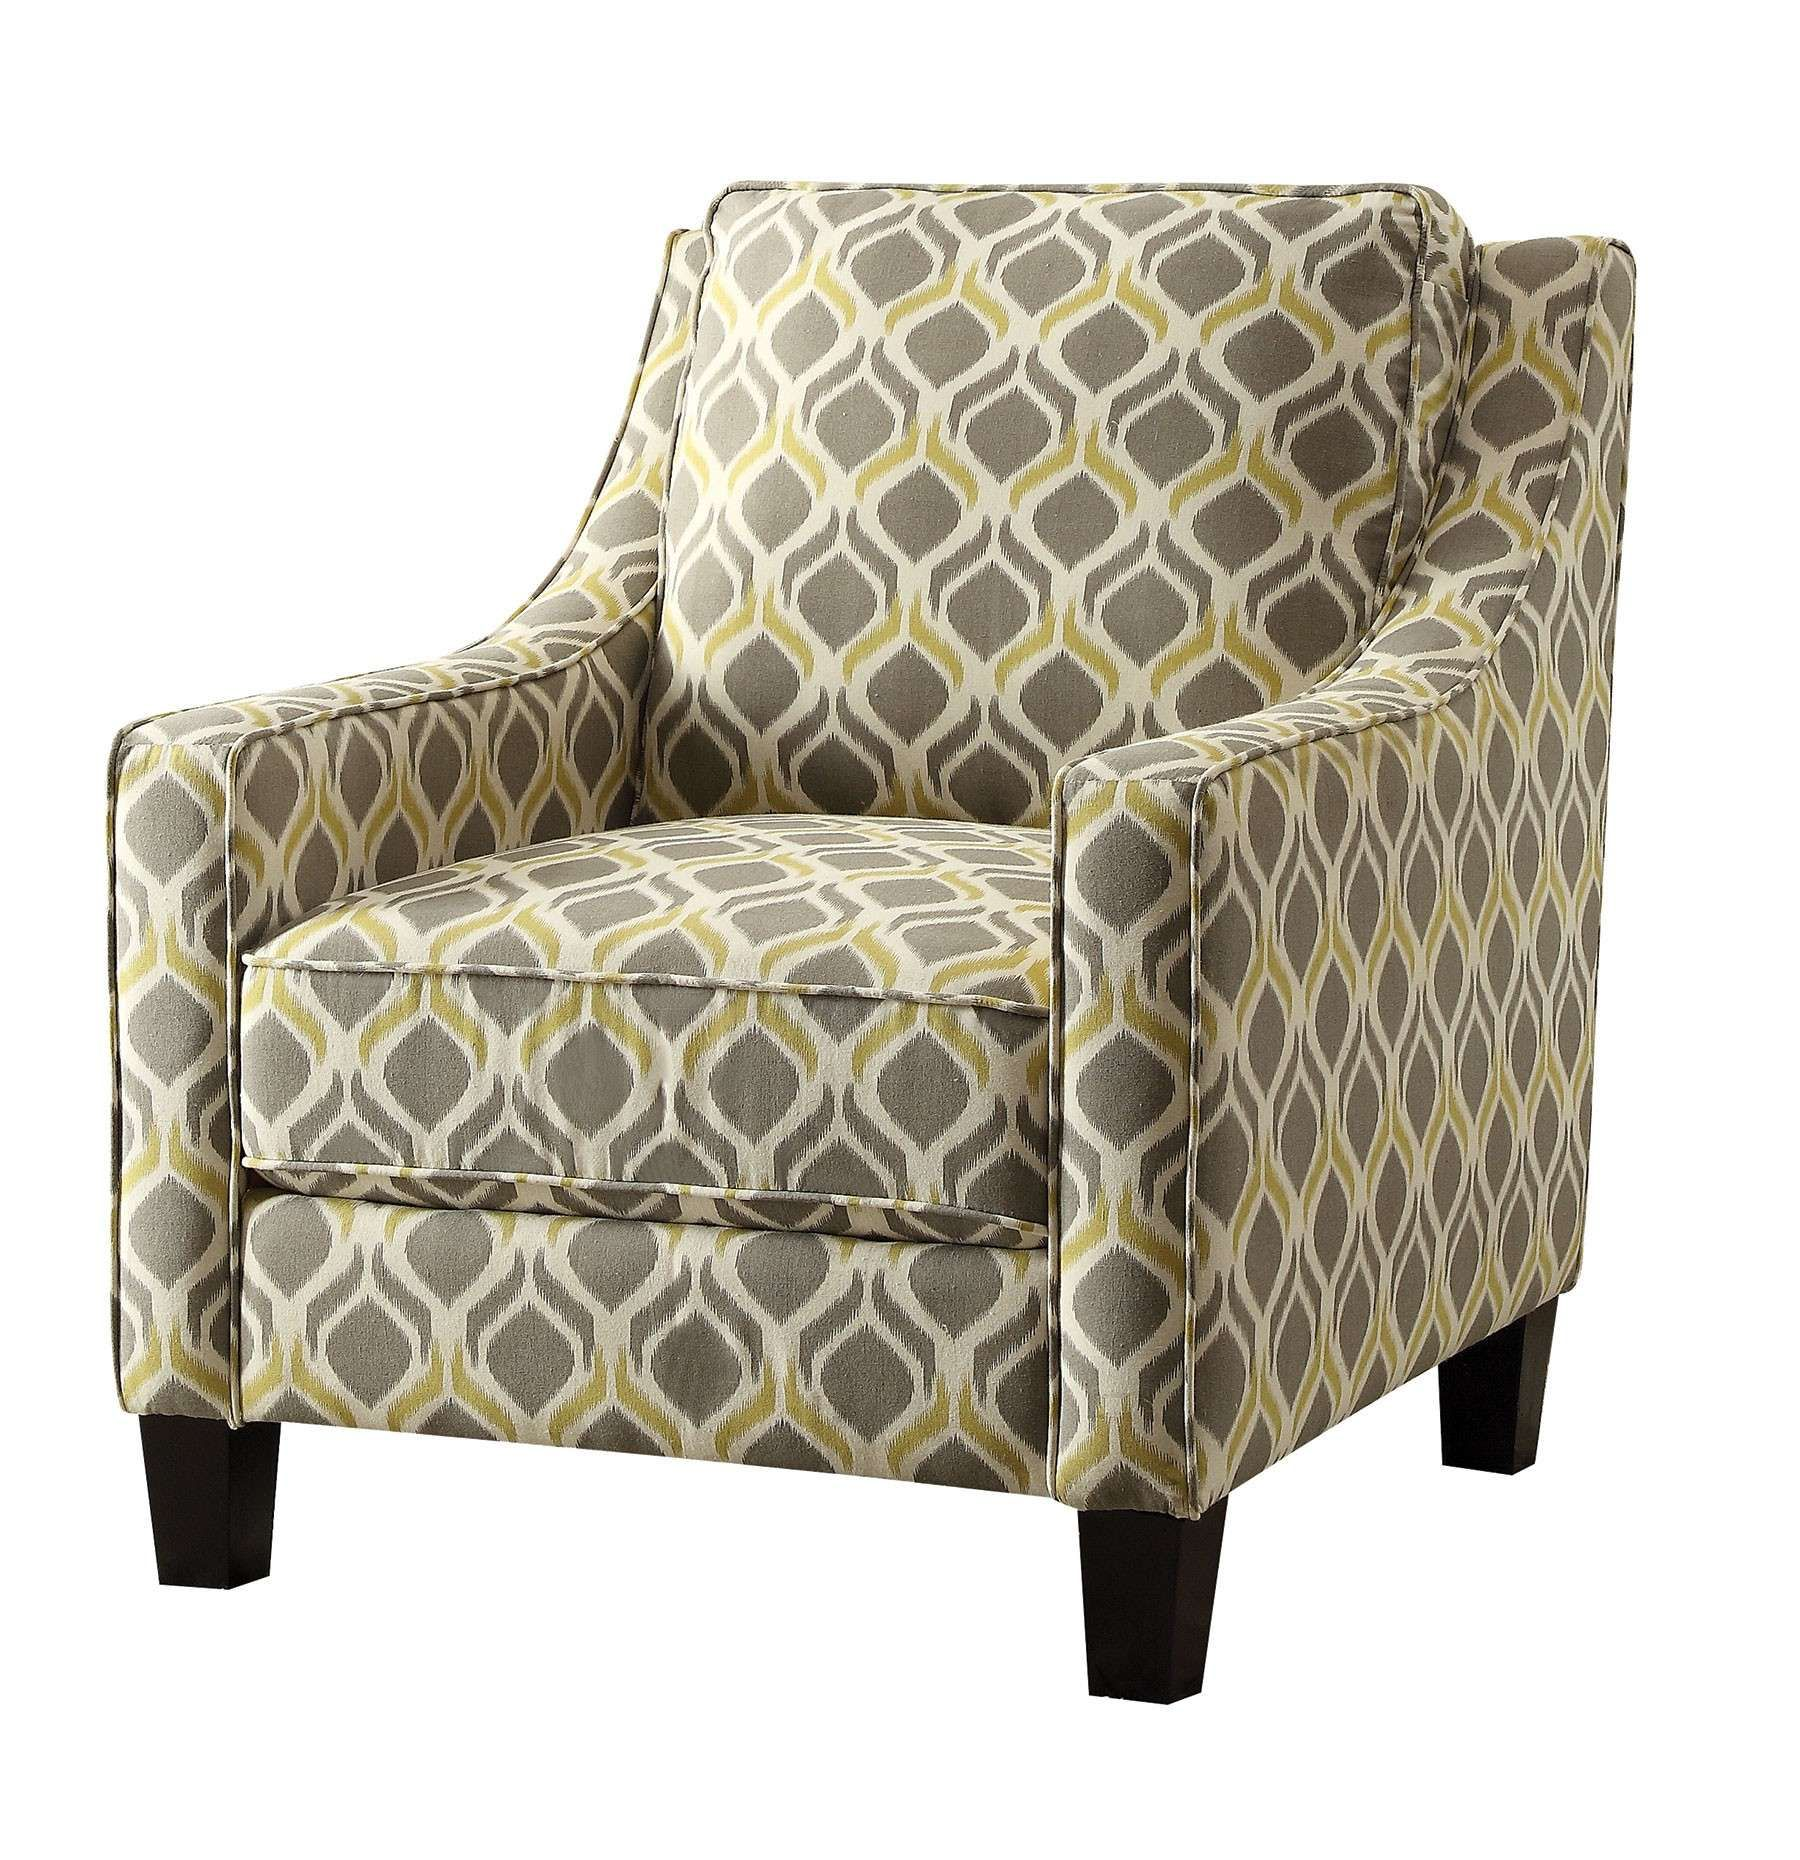 Peachy Gray And Yellow Accent Chair Hot Sellers Yellow Accent Machost Co Dining Chair Design Ideas Machostcouk